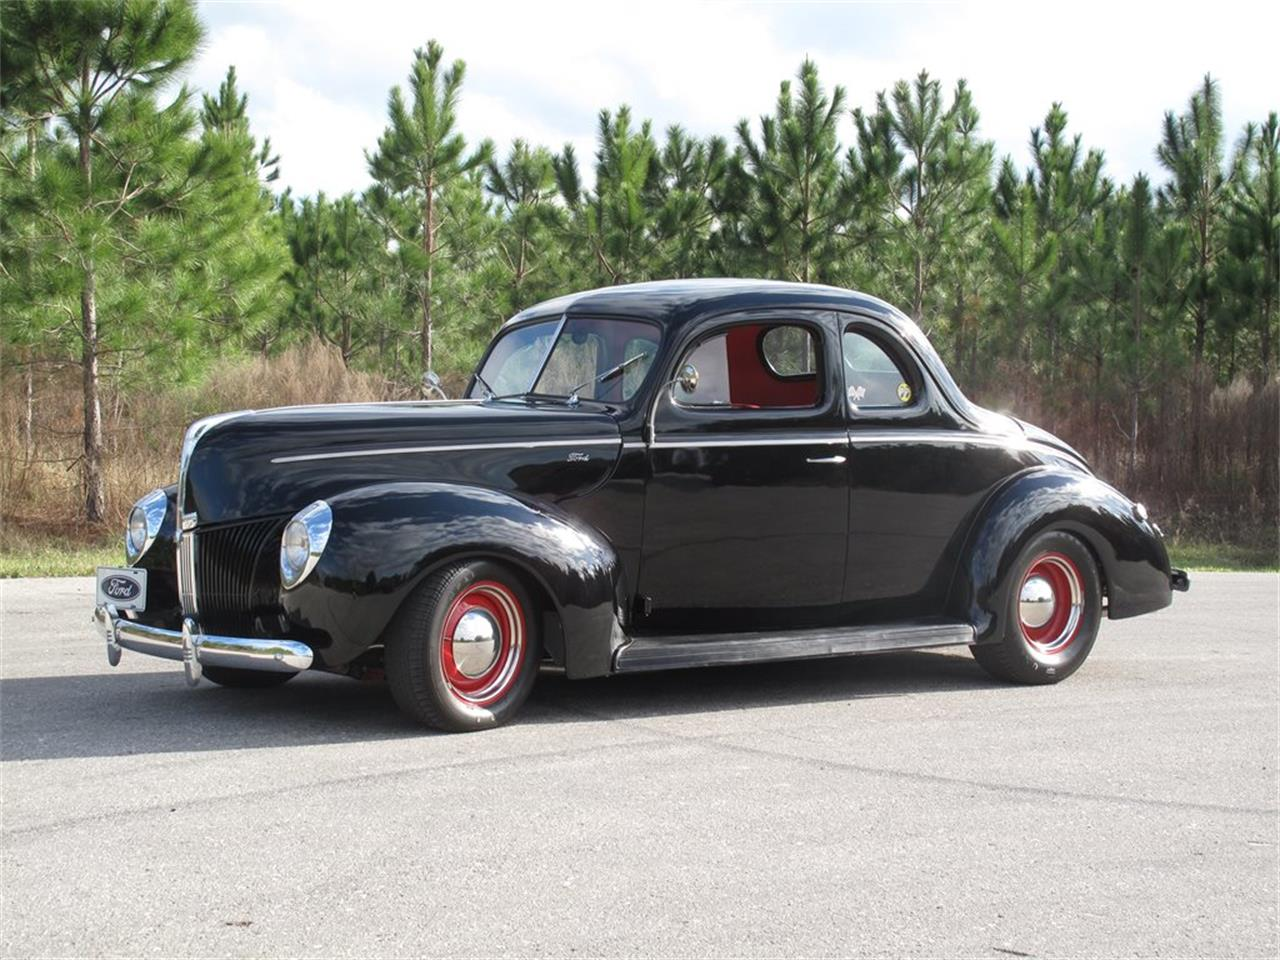 For Sale: 1940 Ford Coupe in Ocala, Florida